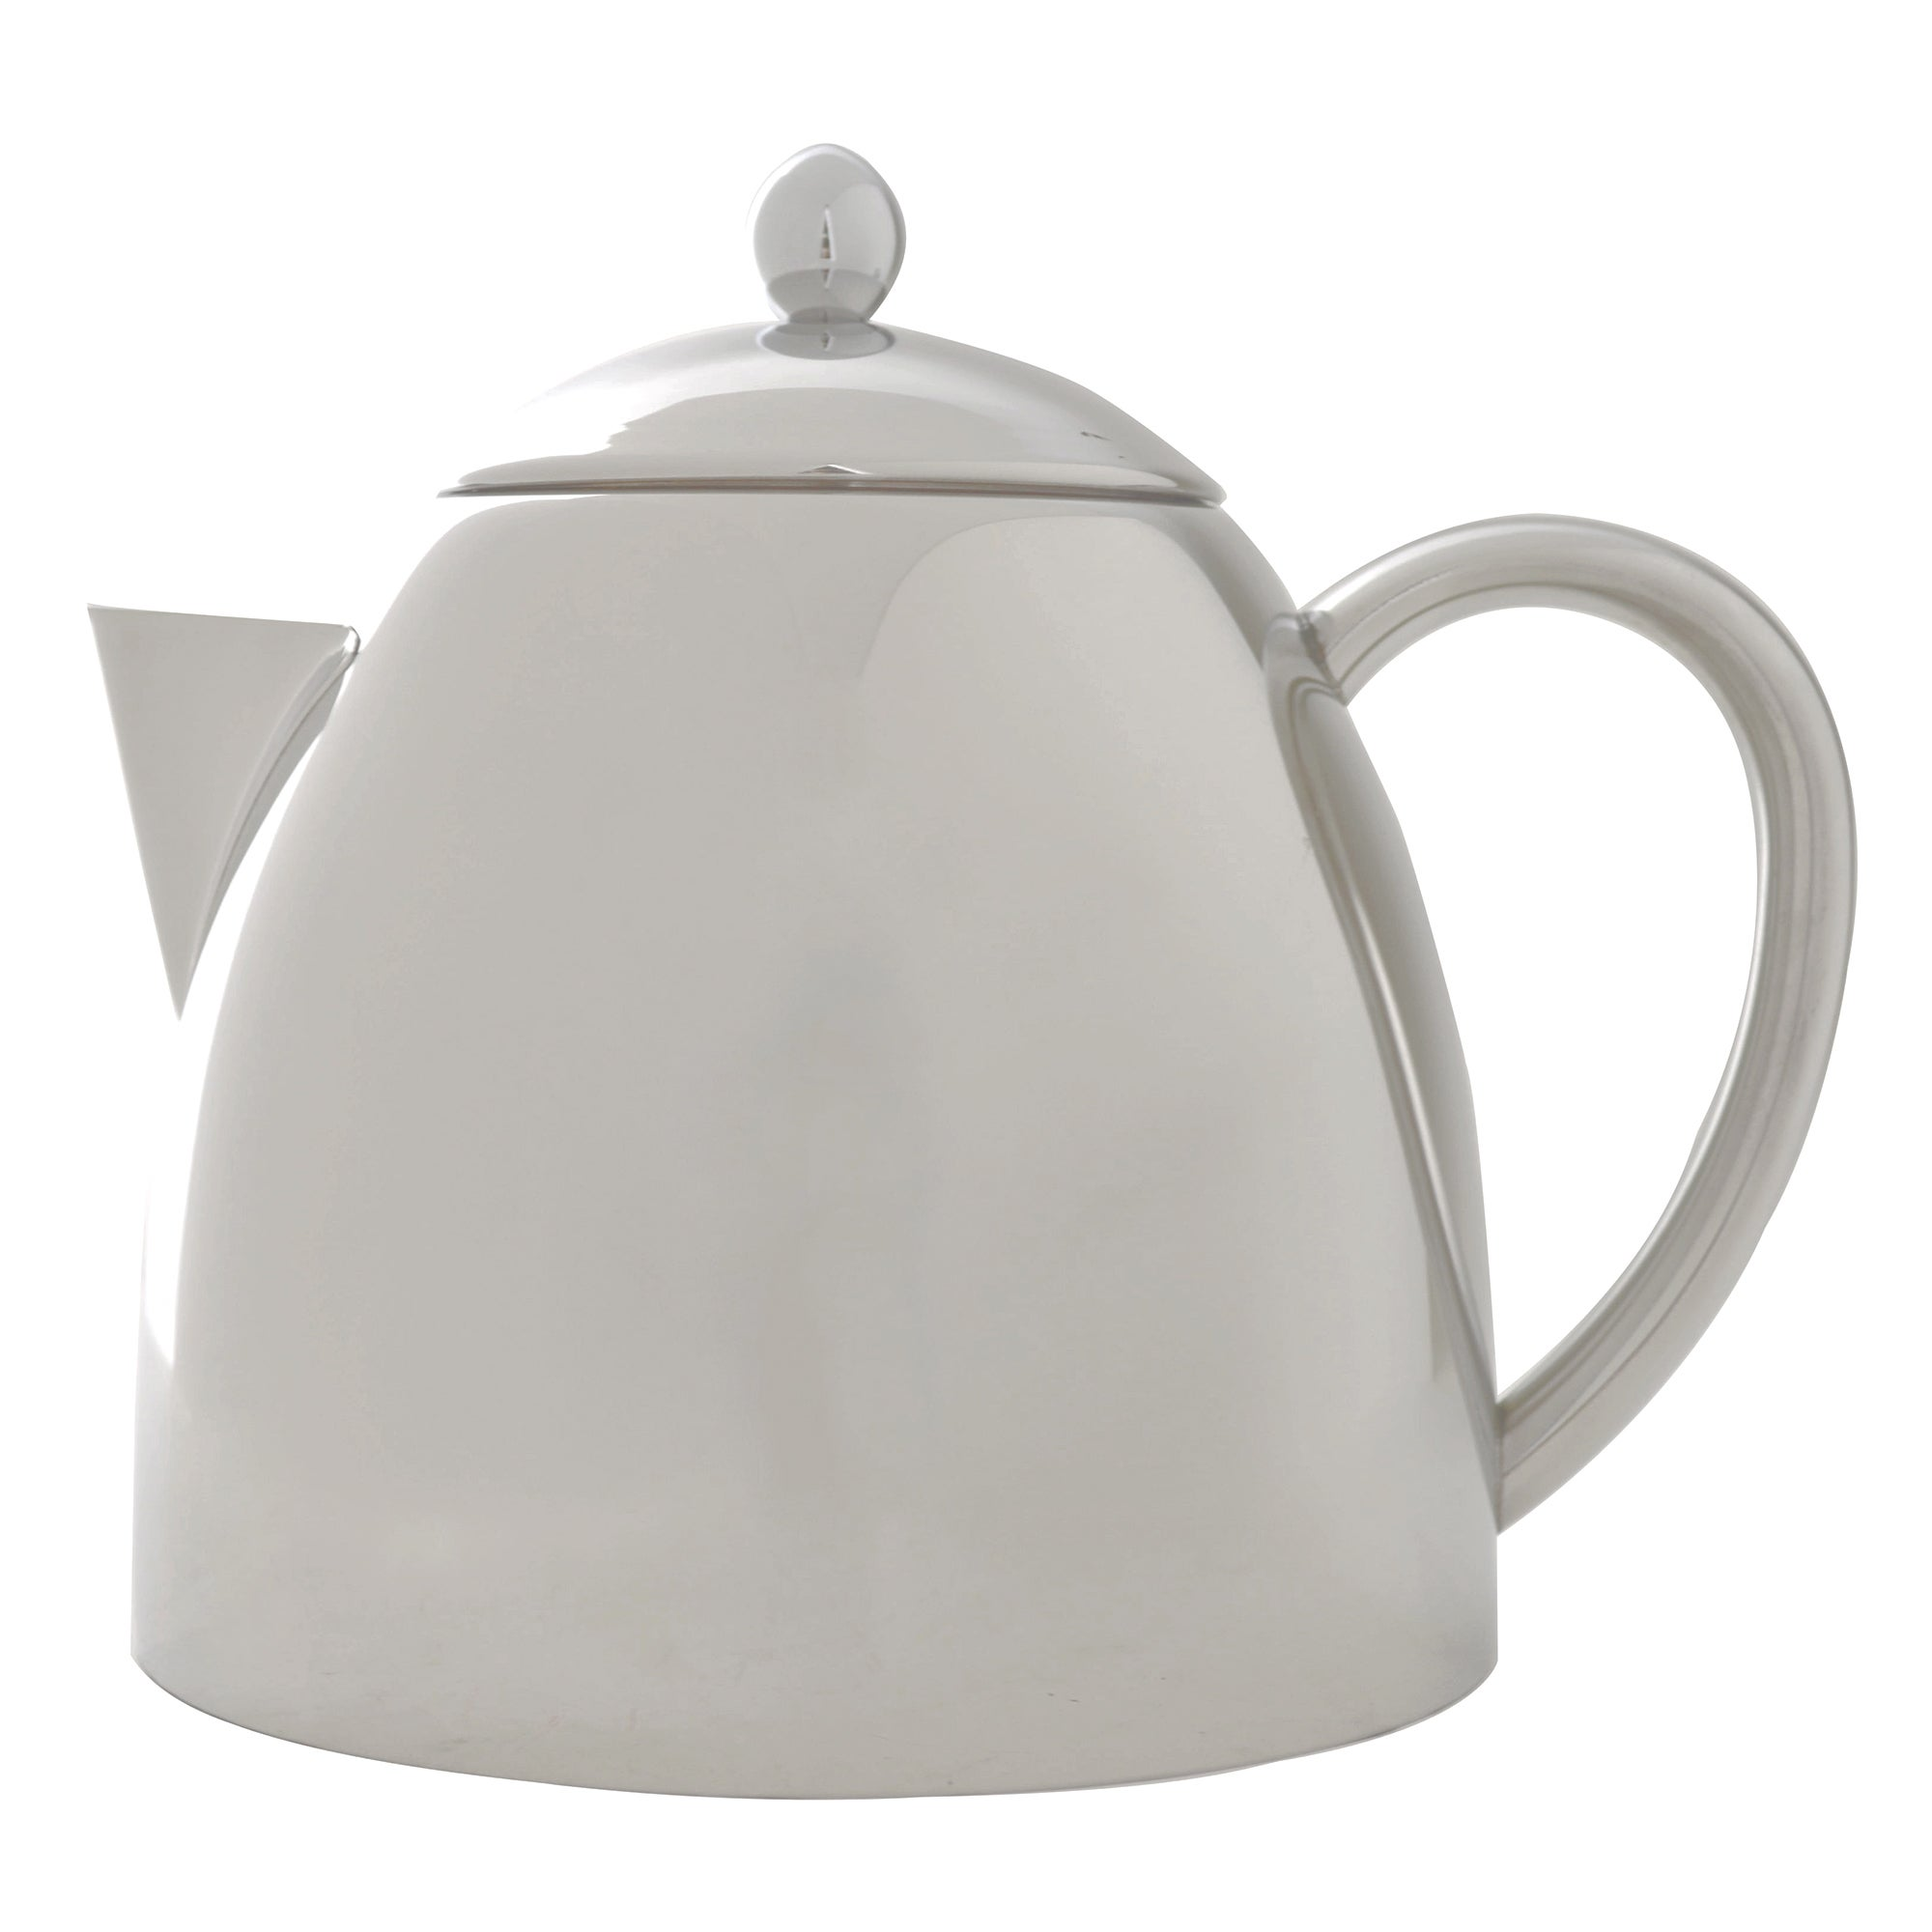 Image of 1.5 Litre Stainless Steel Teapot Silver